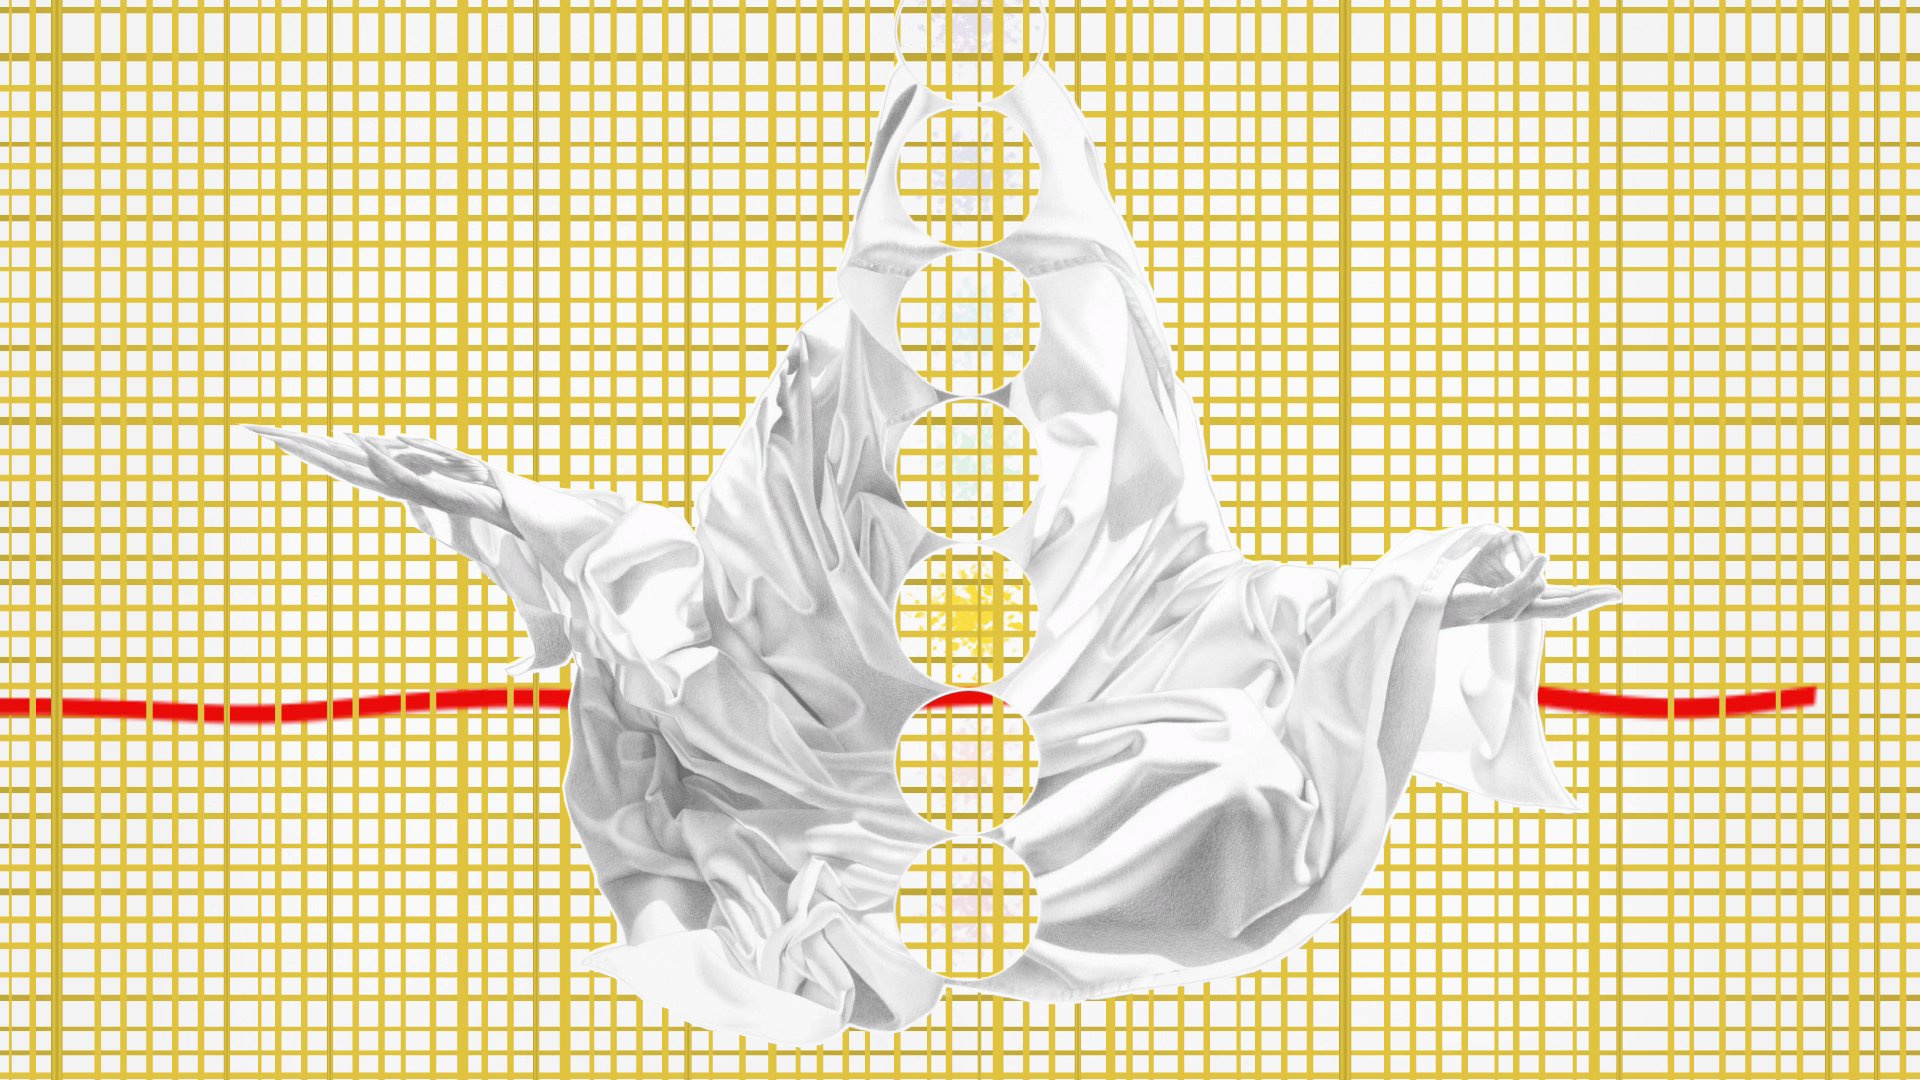 Digital animation art created by Constance Edwards Scopelitis, featured is the yellow chakra